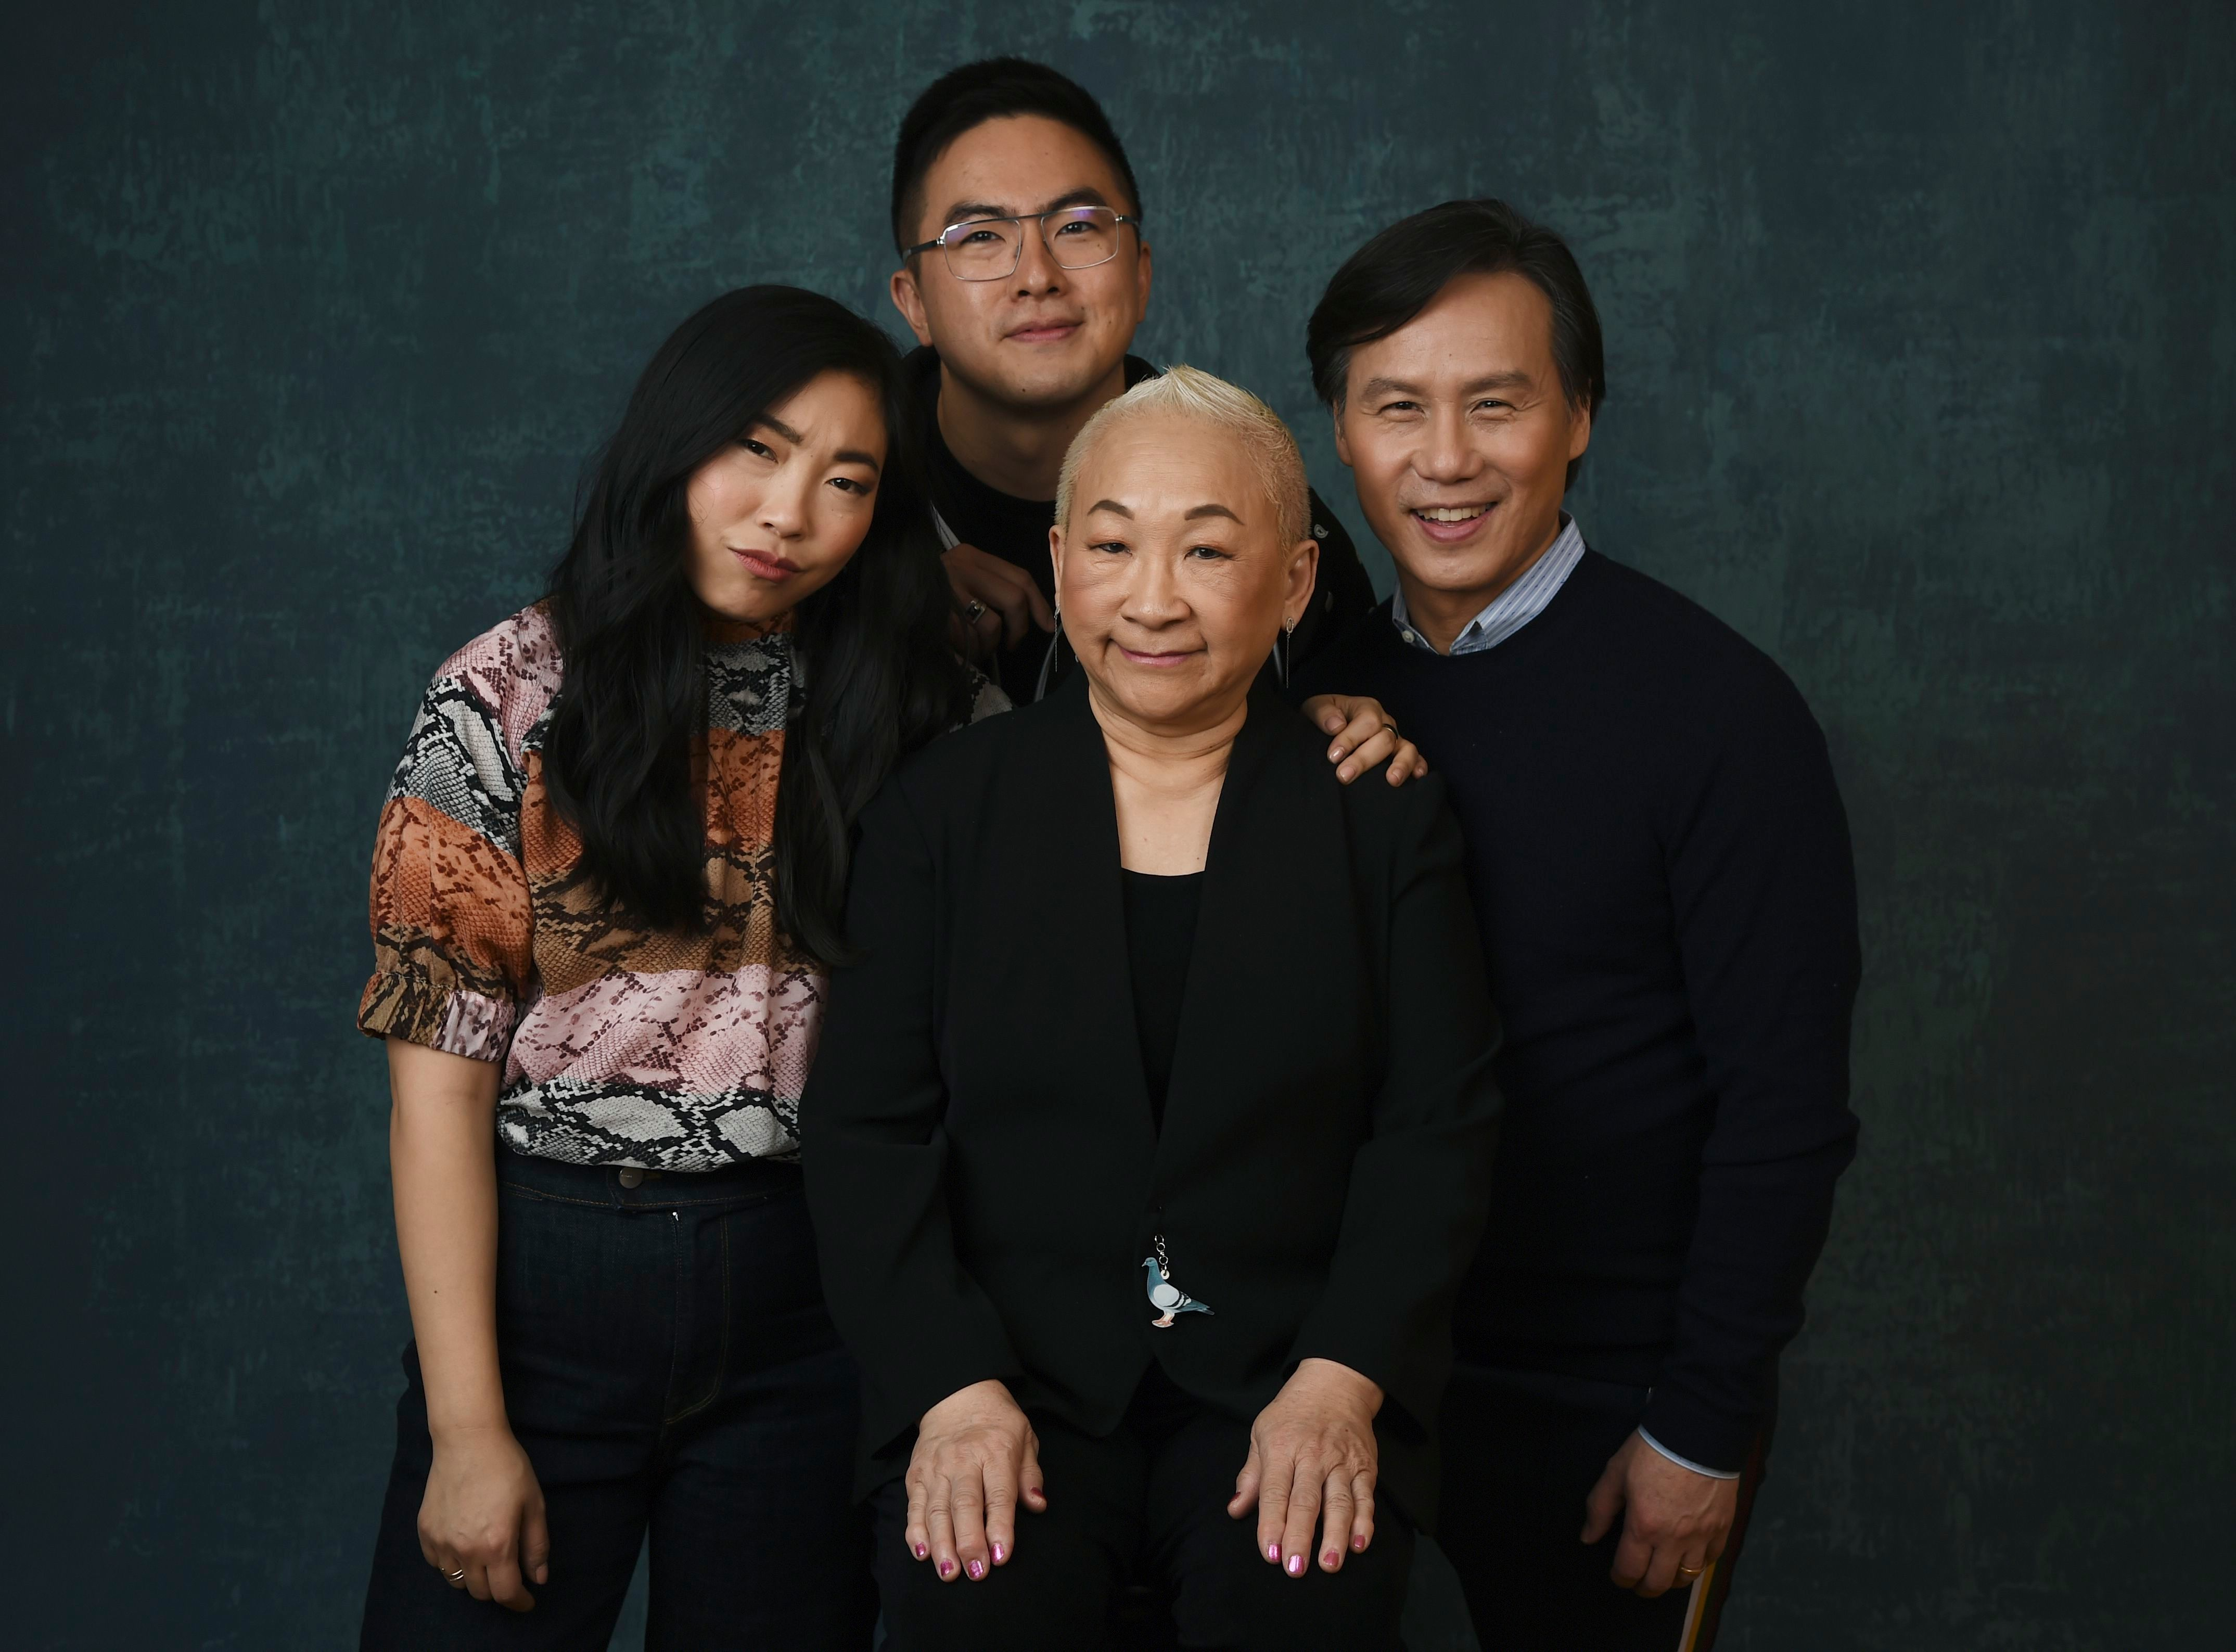 """Awkwafina, Bowen Yang, Lori Tan Chinn, BD Wong. Awkwafina, left, poses with fellow cast members, from second left, Bowen Yang, Lori Tan Chinn and BD Wong to promote their show """" Awkwafina is Nora from Queens"""" during the 2020 Winter Television Critics Association Press Tour, in Pasadena, Calif2020 Winter TCA - """"Awkwafina is Nora from Queens"""" Portrait Session, Pasadena, USA - 14 Jan 2020"""